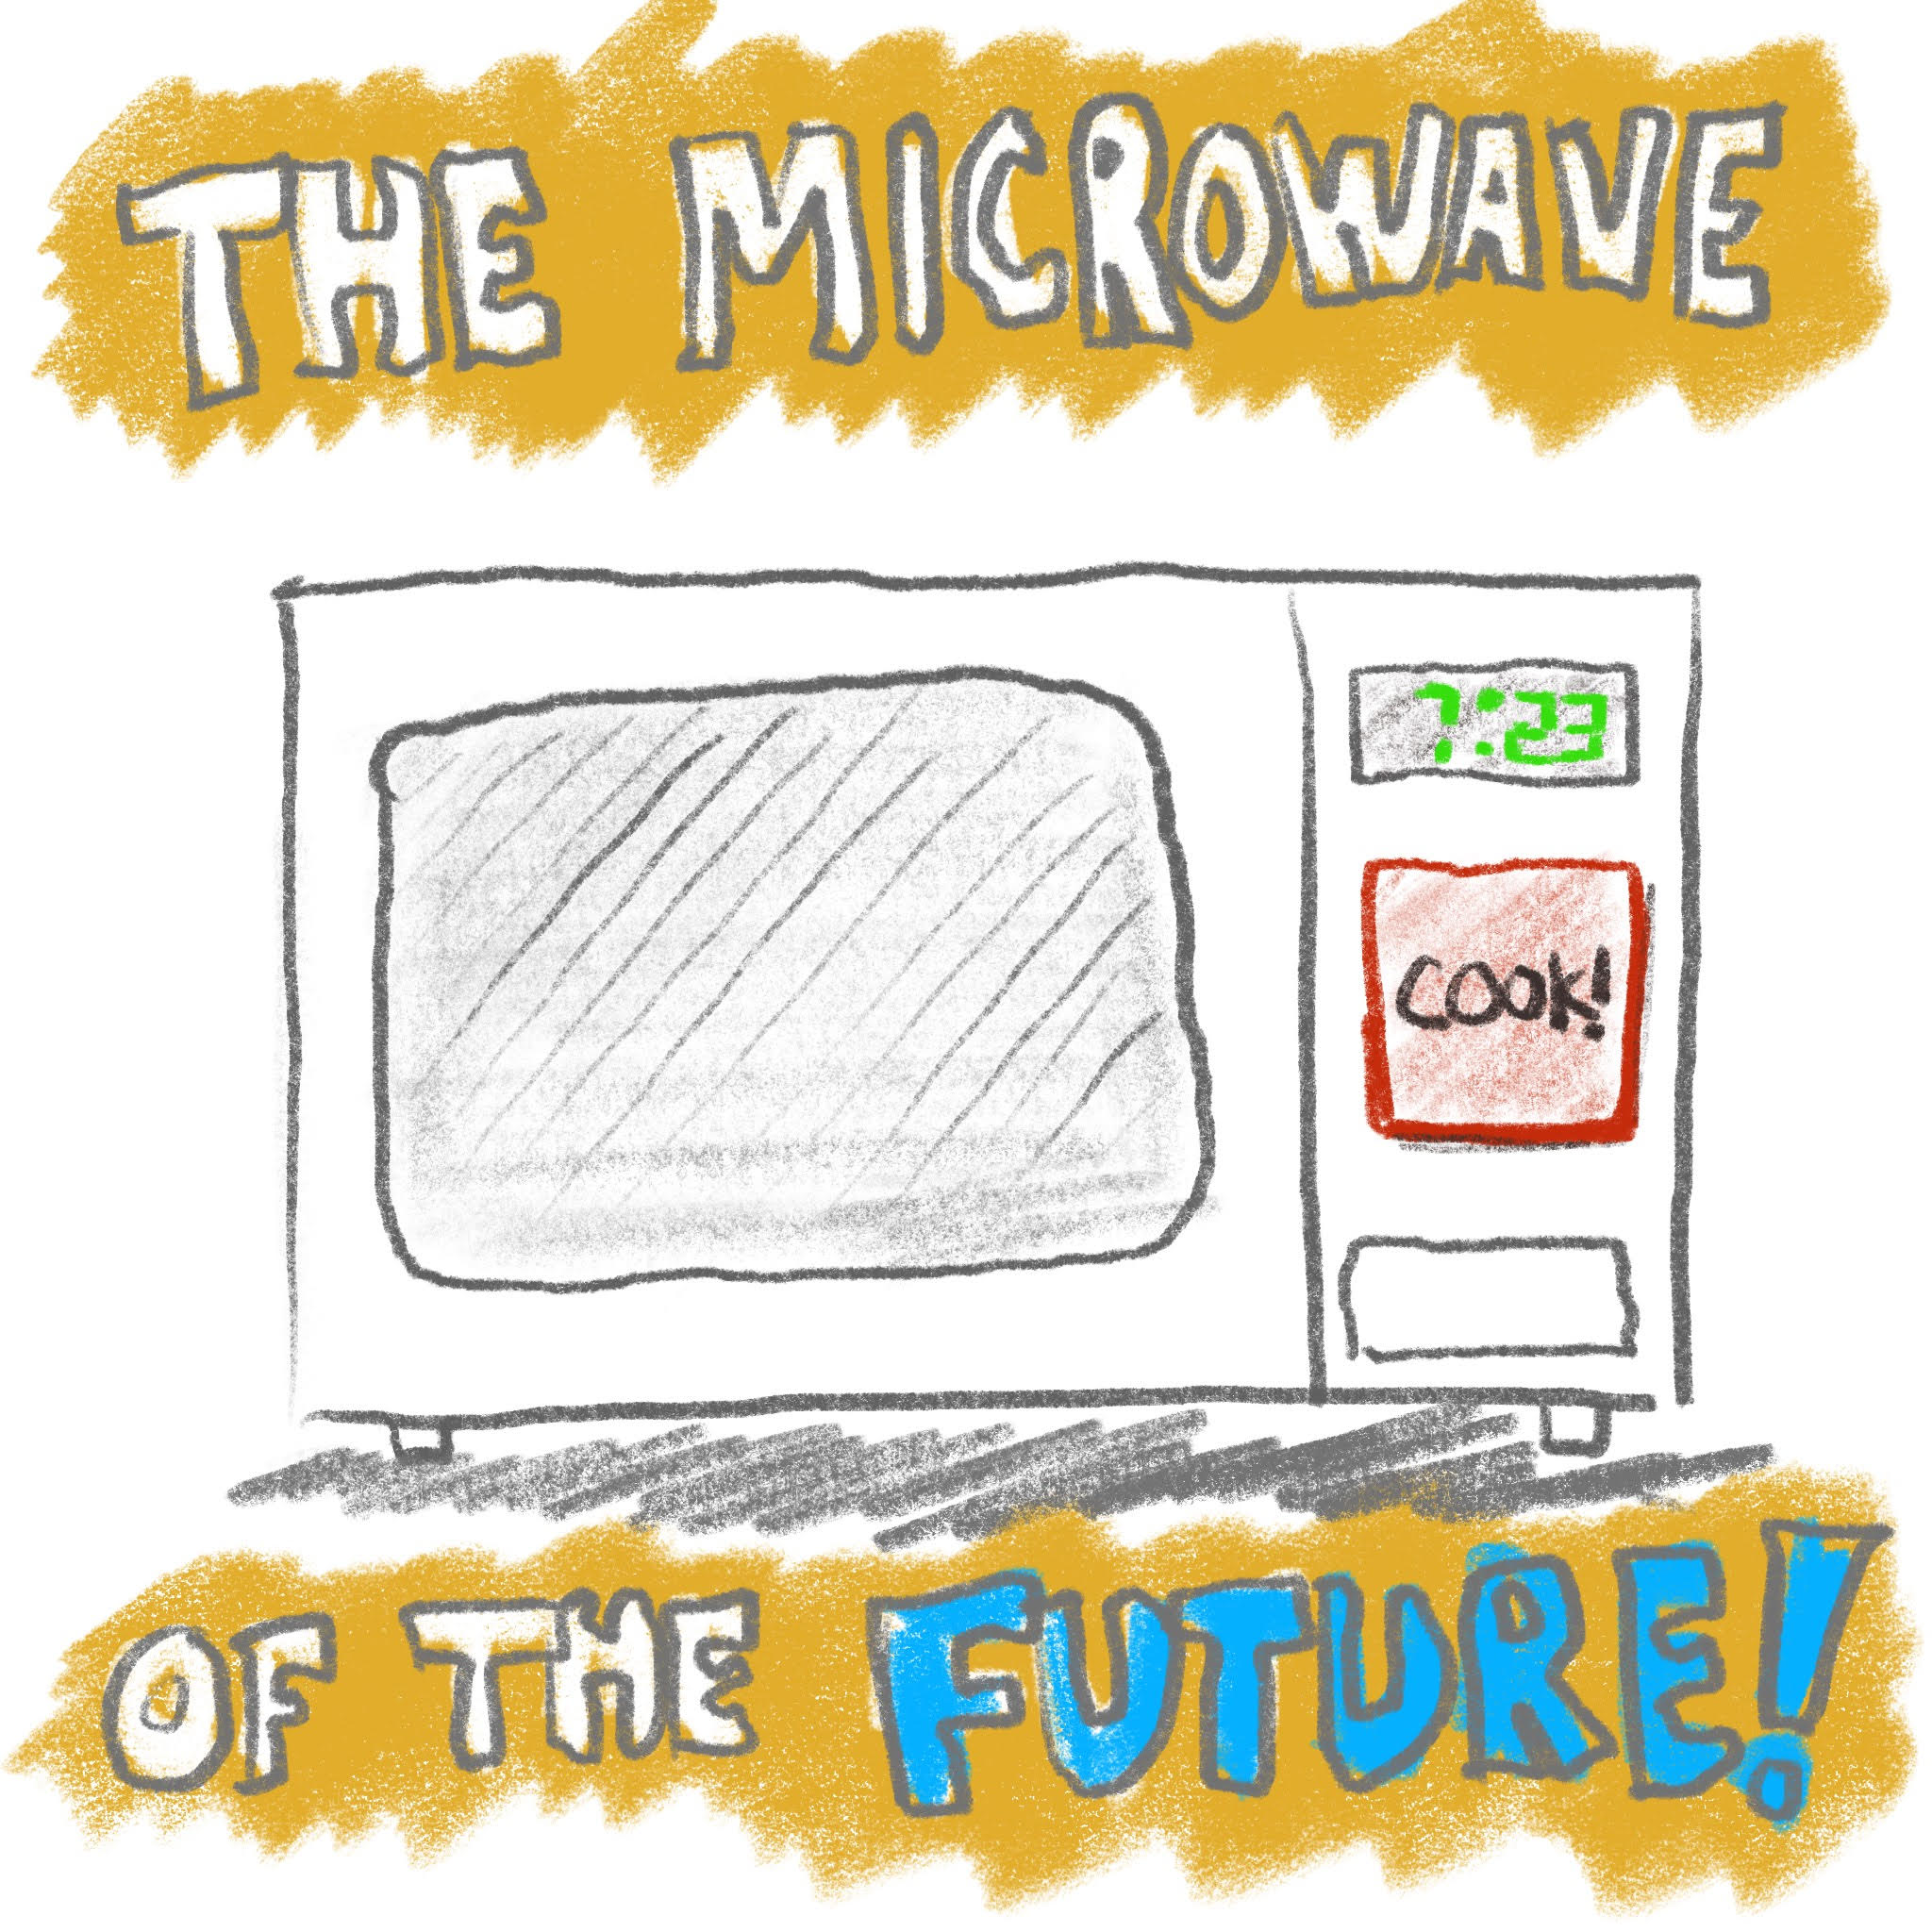 Microwave of the future, still cooks pizza rolls of the past